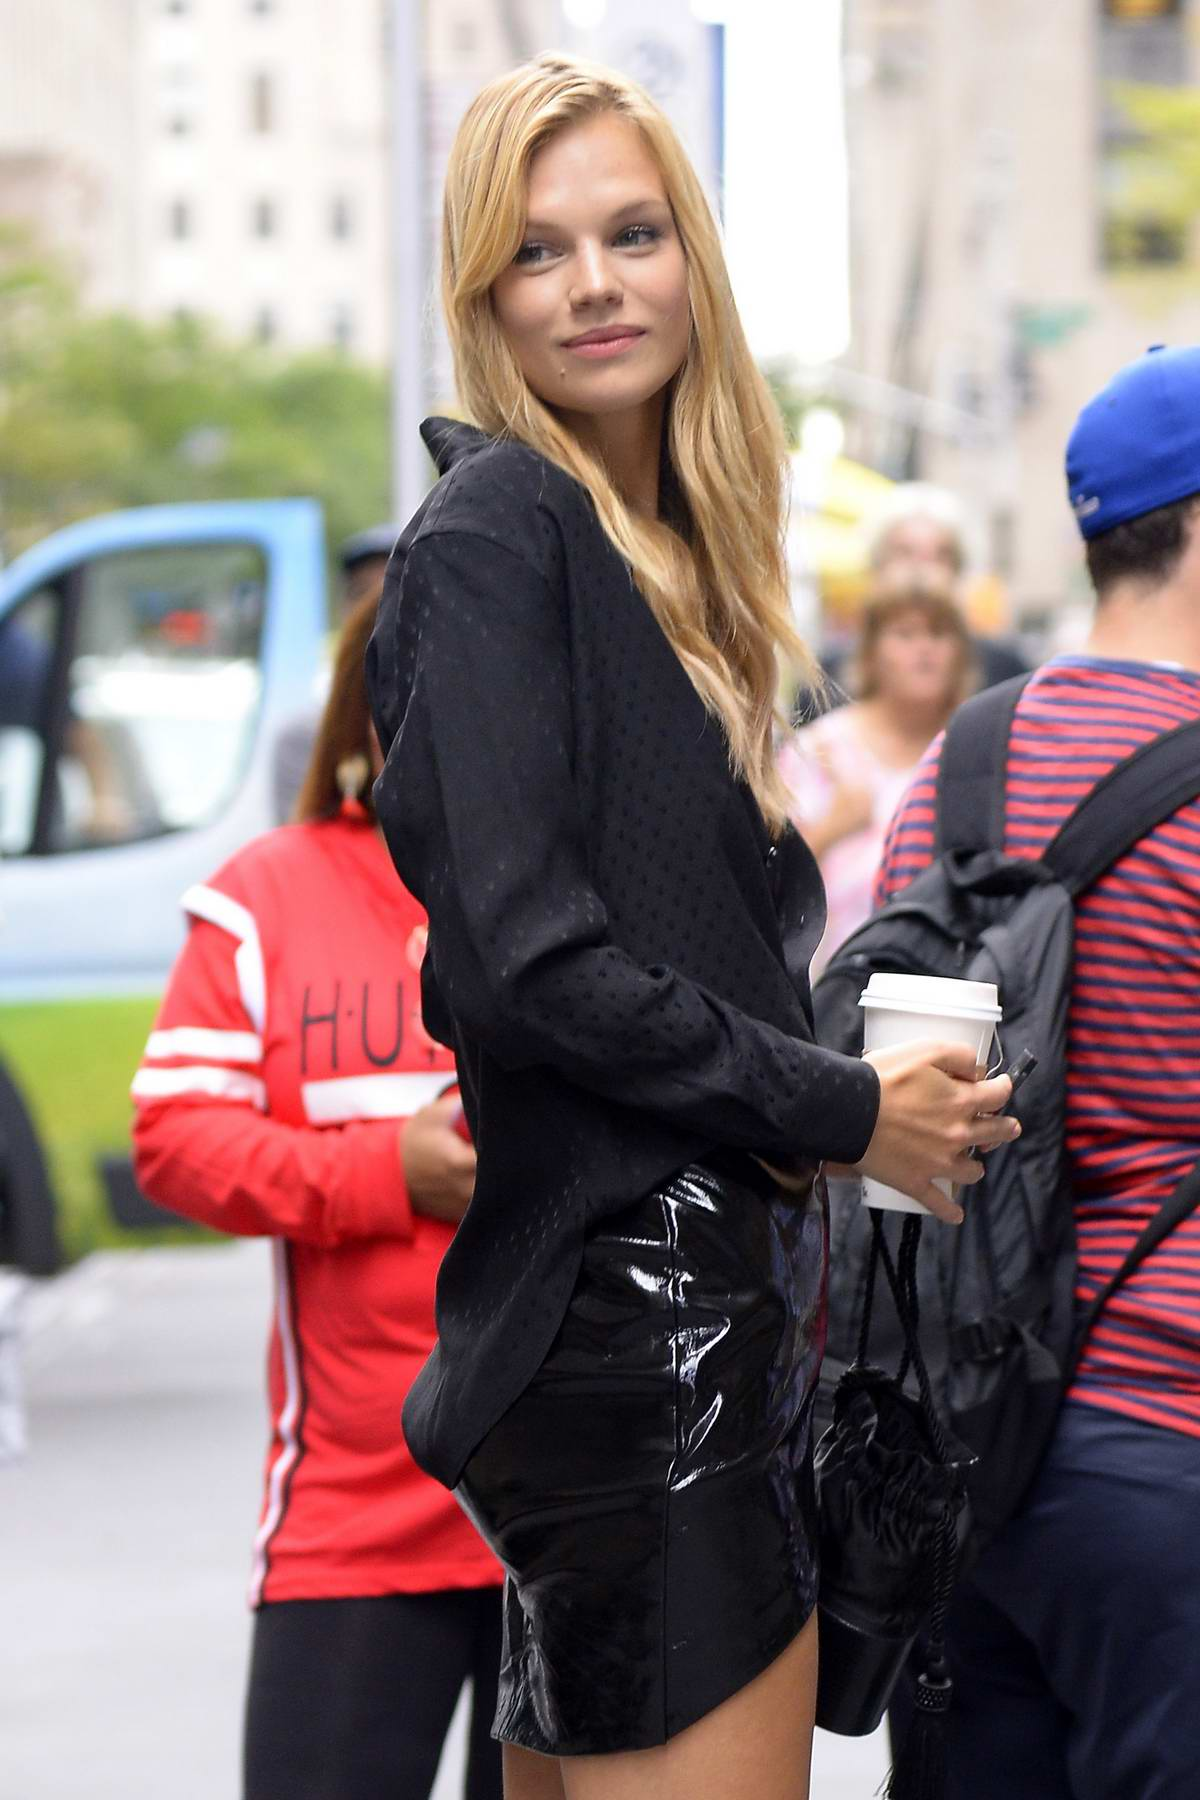 nadine leopold wears an unbuttoned black shirt and pvc ...